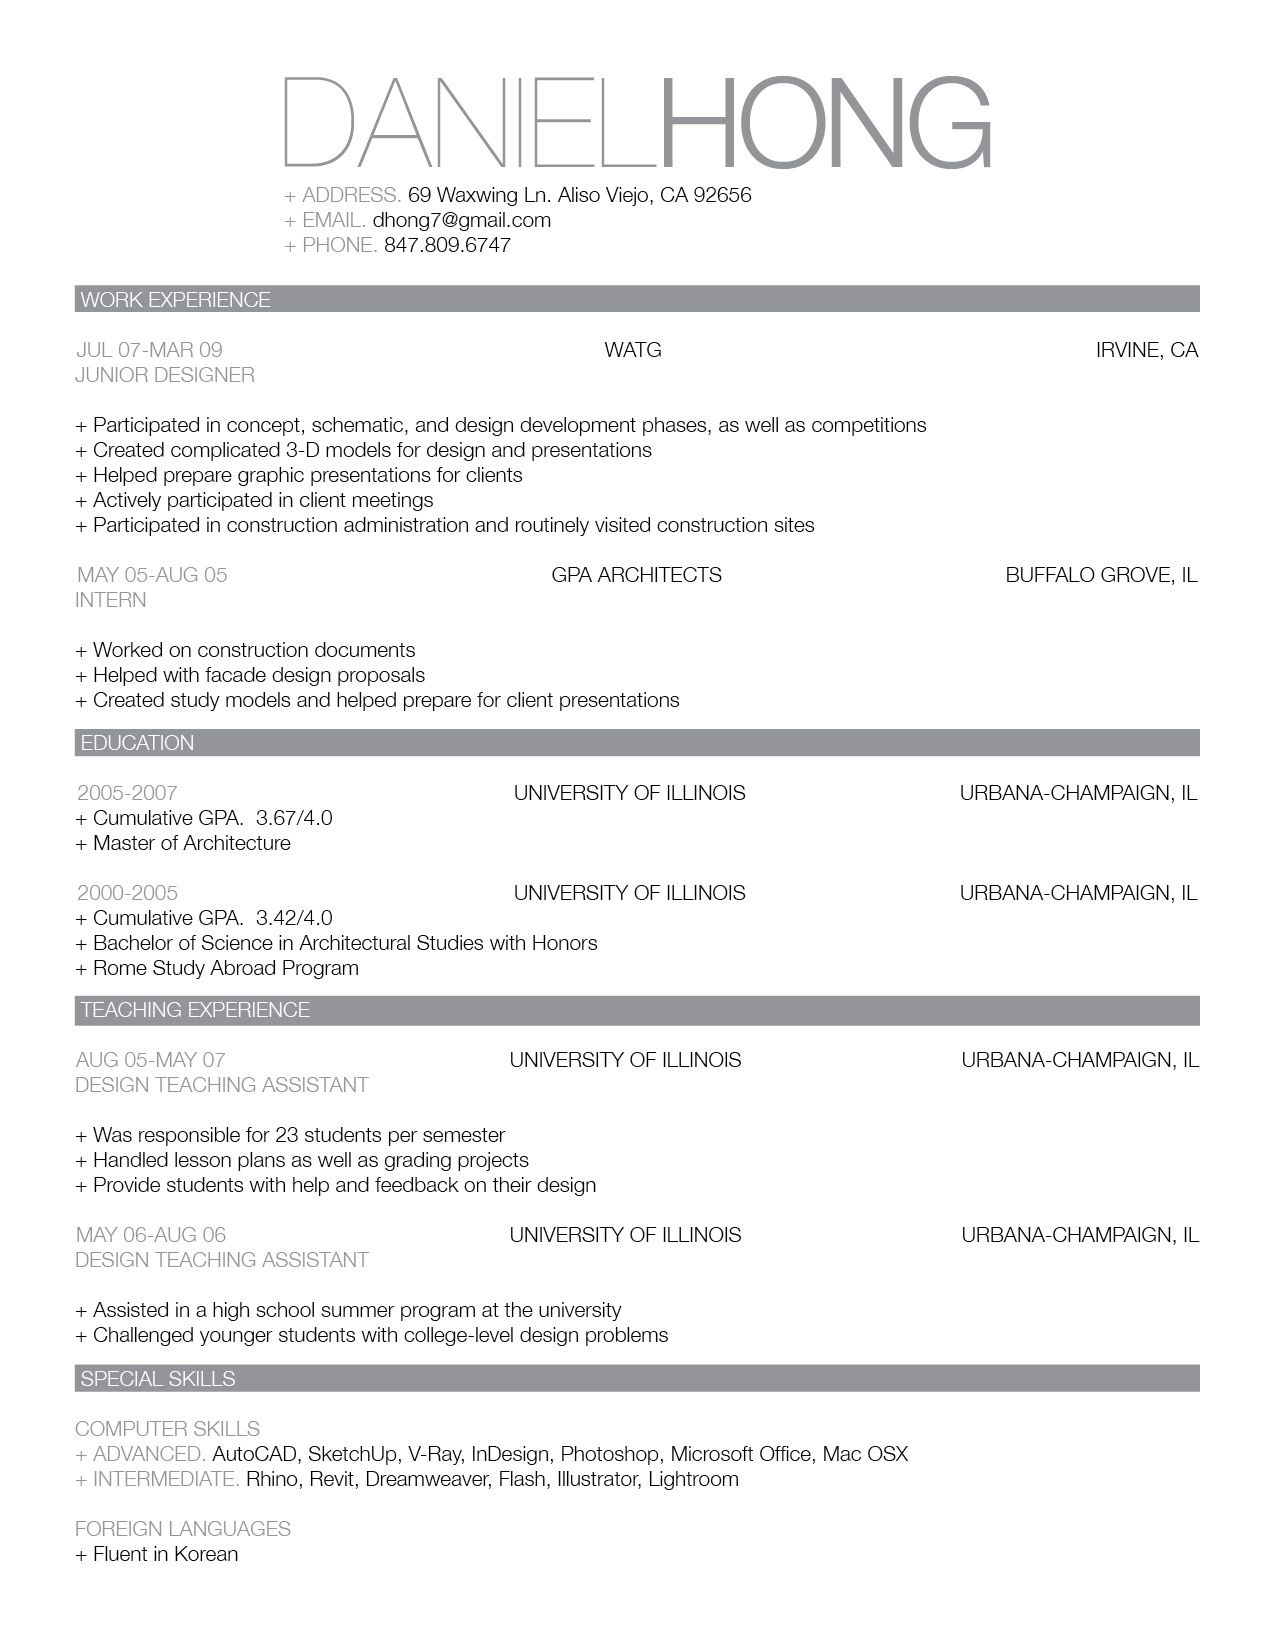 Sample Resume Templates Updated Cv And Work Sample  Professional Resume Sample Resume